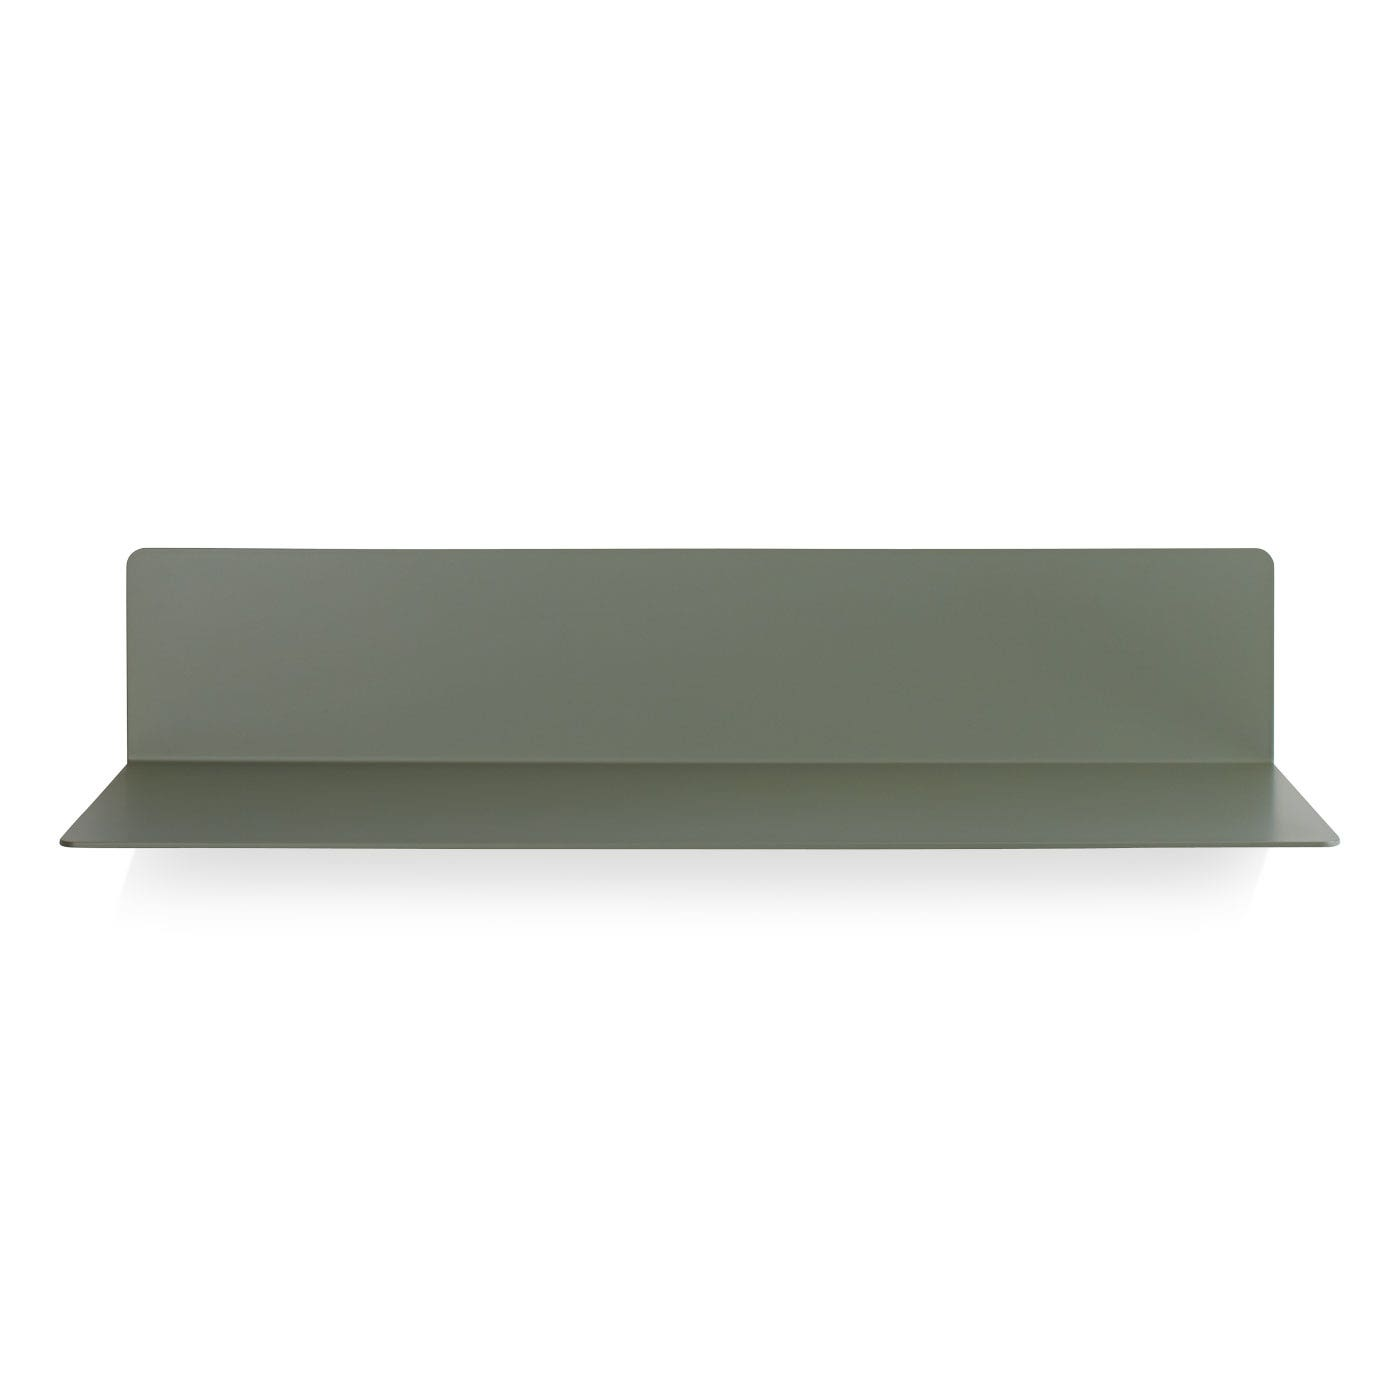 Previous image Welf Modern Floating Wall Shelf - Grey Green ...